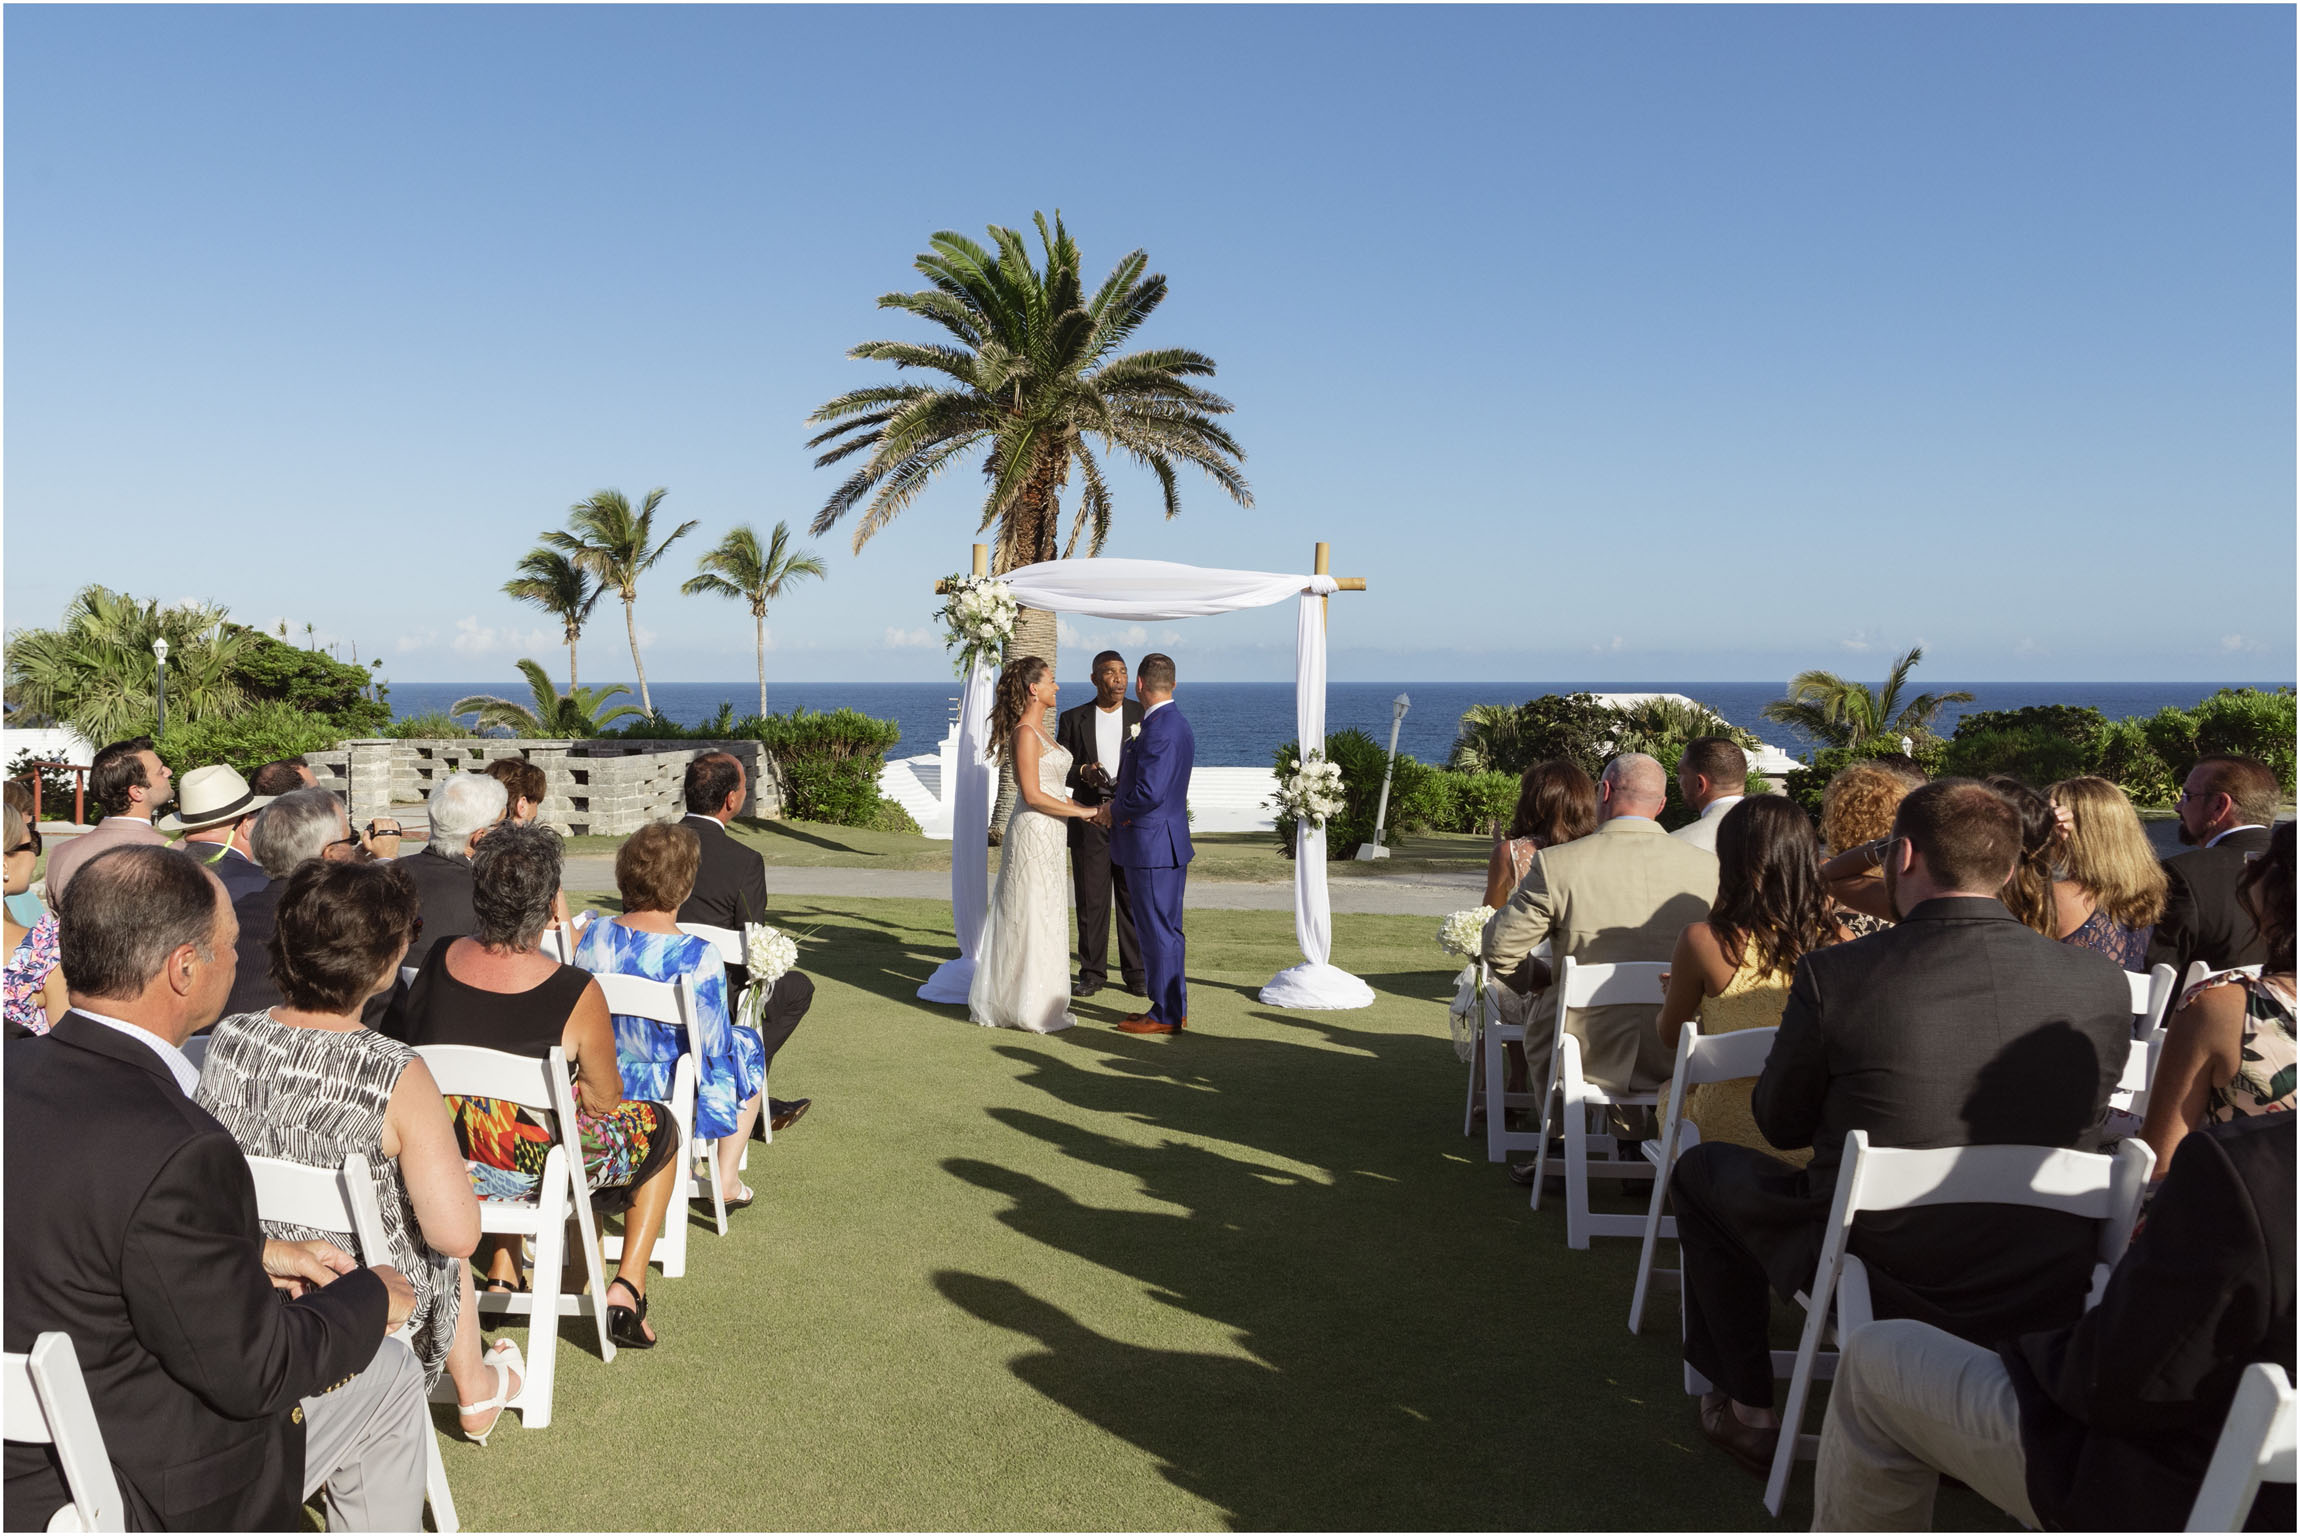 ©FianderFoto_Catherine_Kenny_Coral Beach Wedding_169.jpg